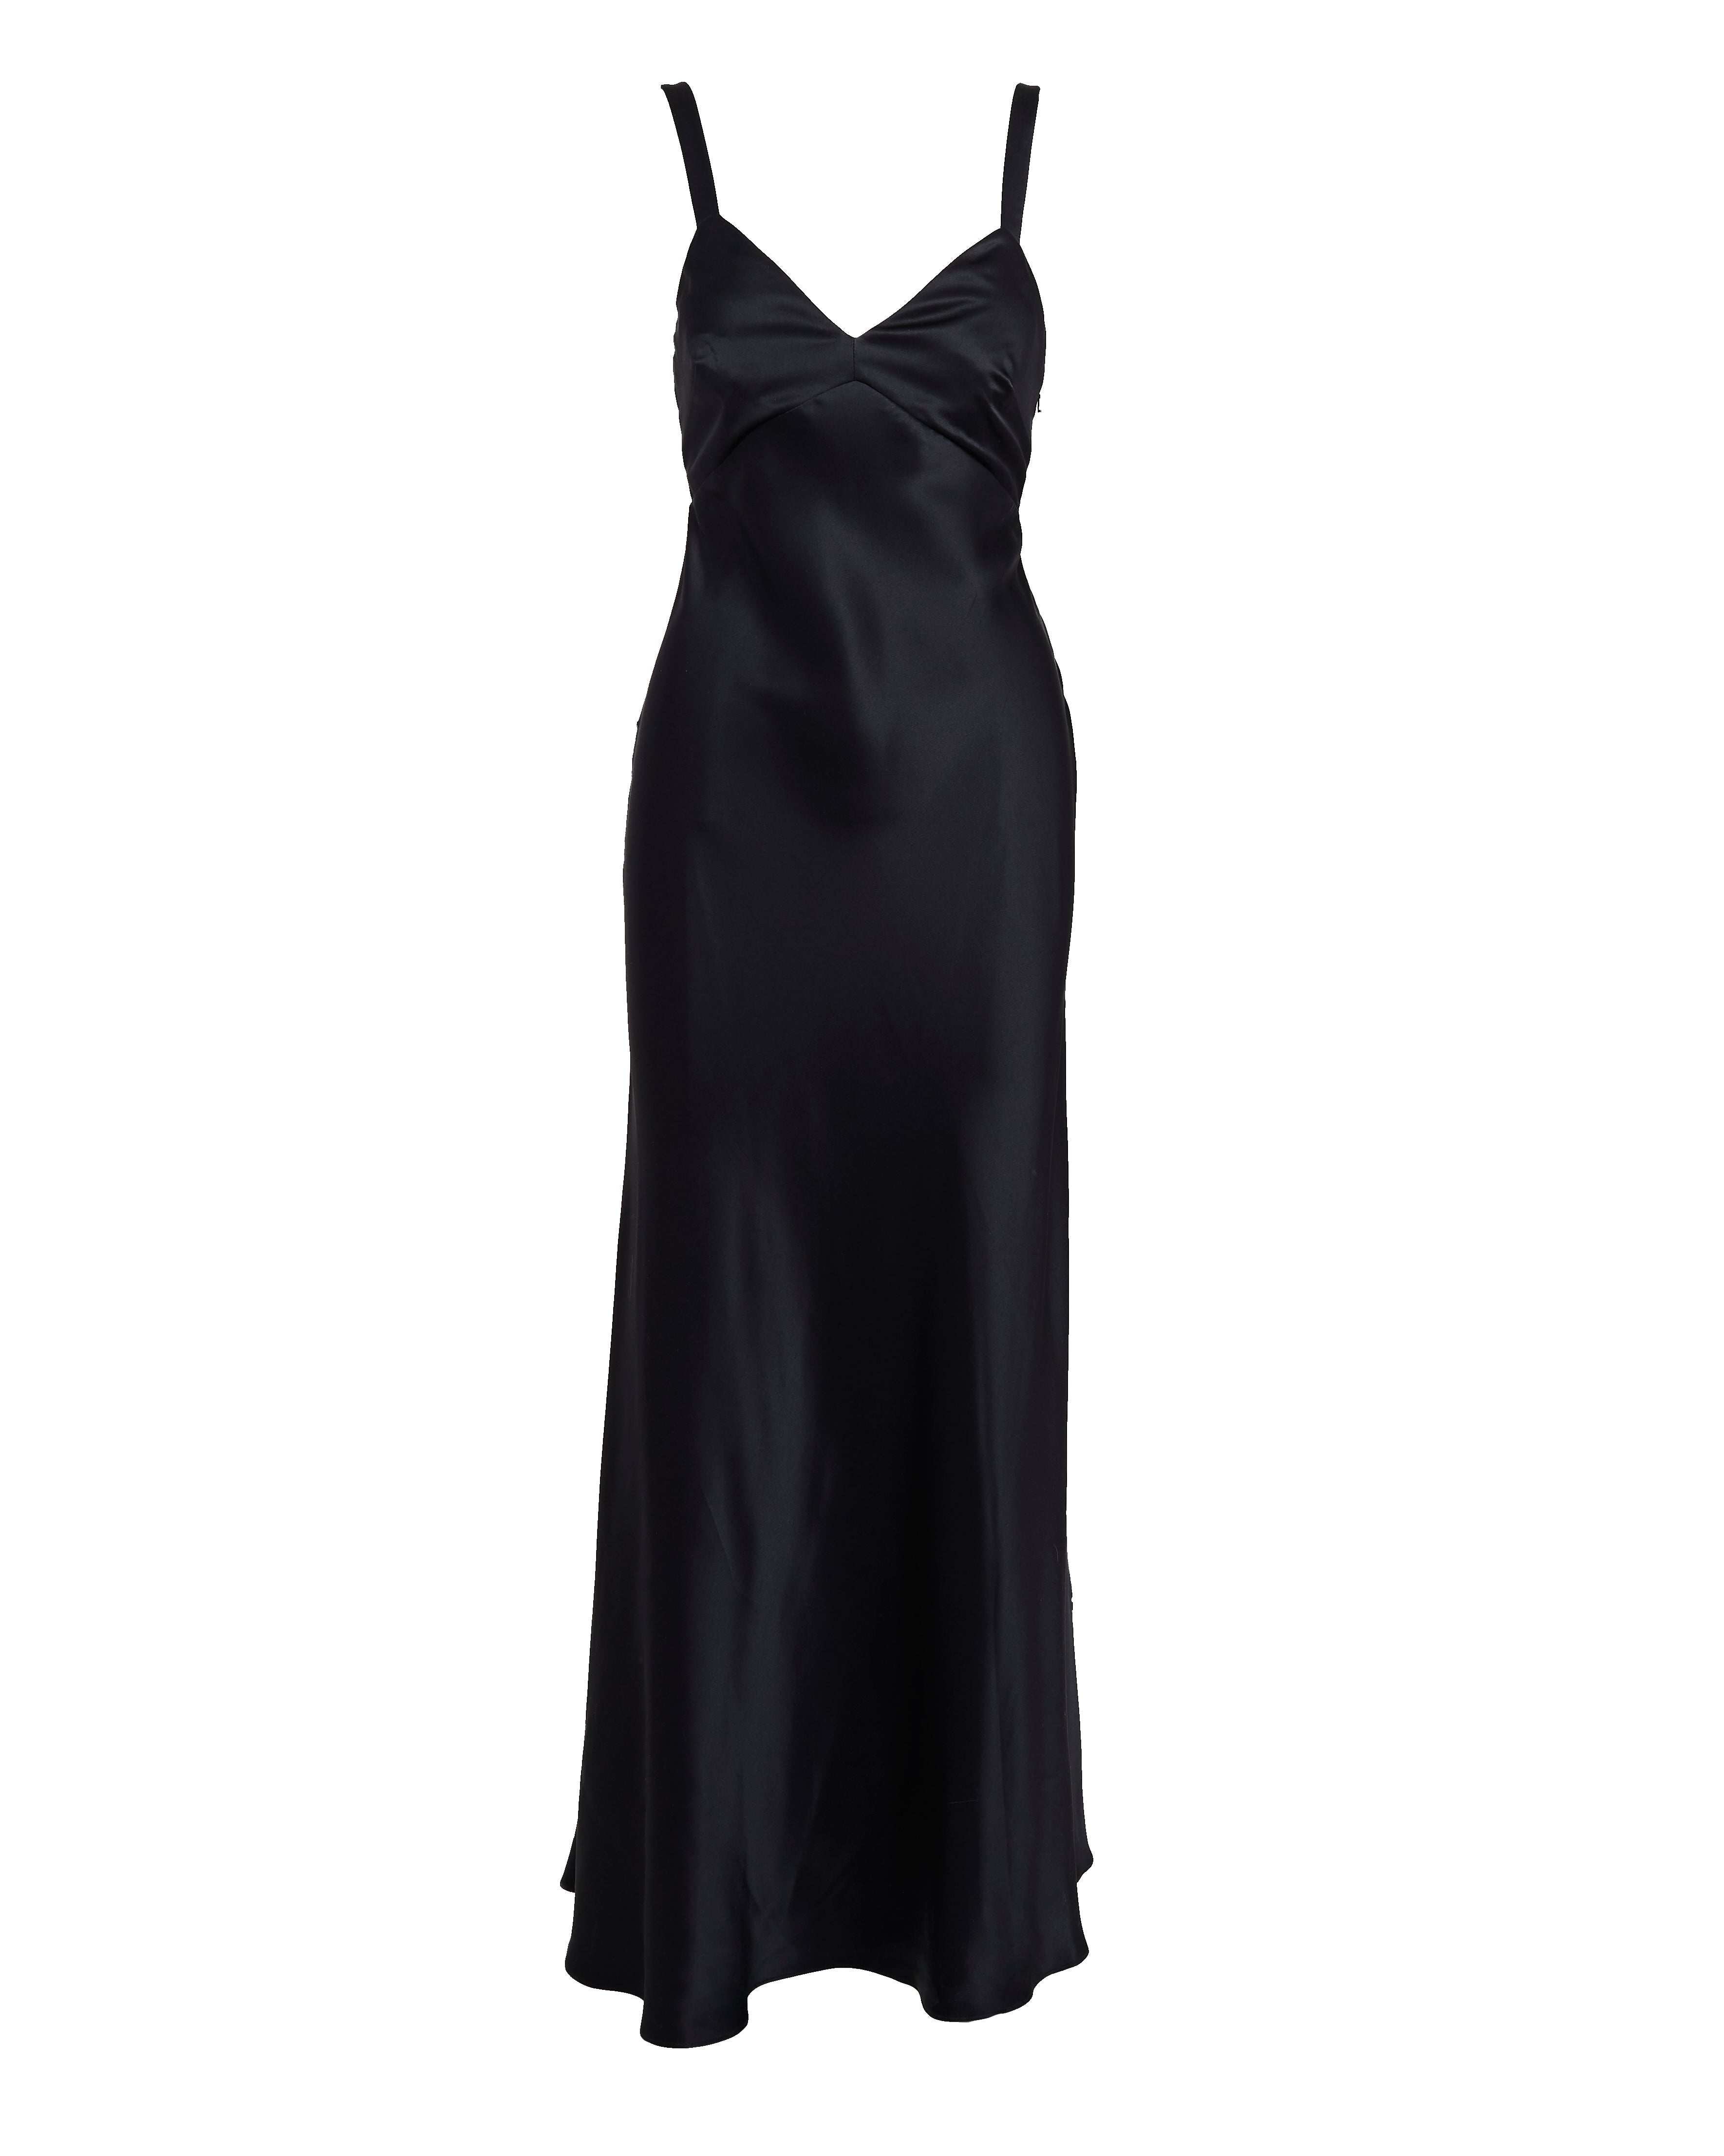 The Tommie Dress | Black